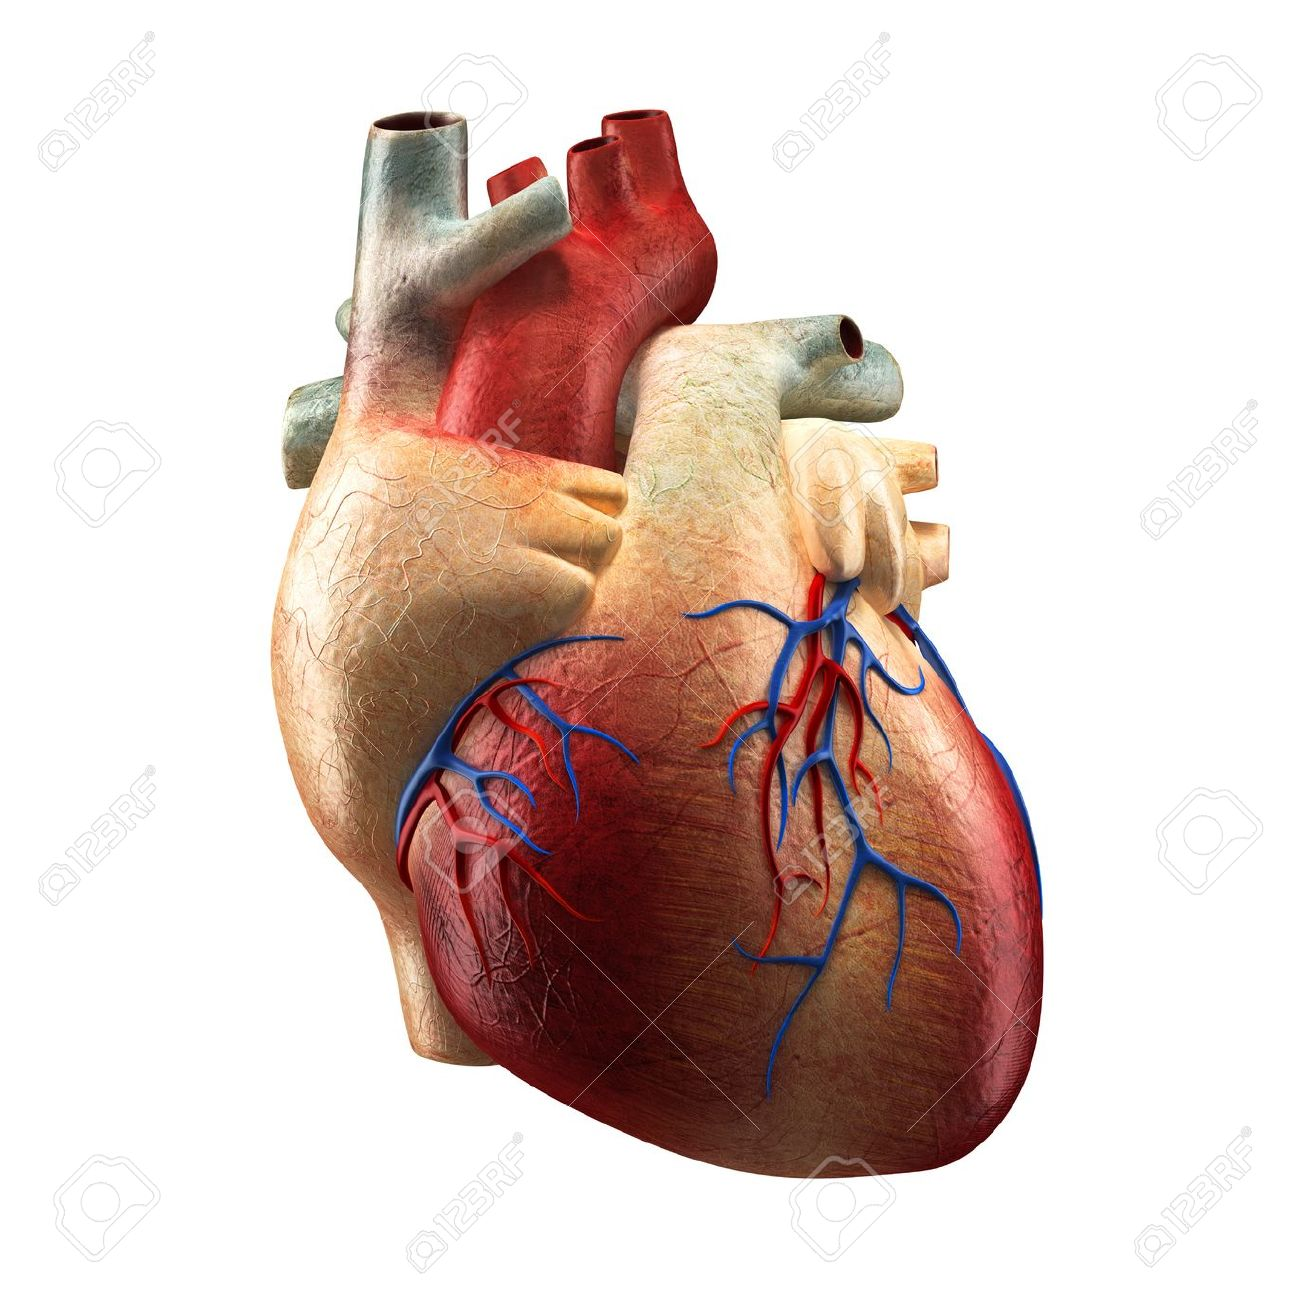 Real Heart Isolated On White - Human Anatomy Model Stock Photo ...